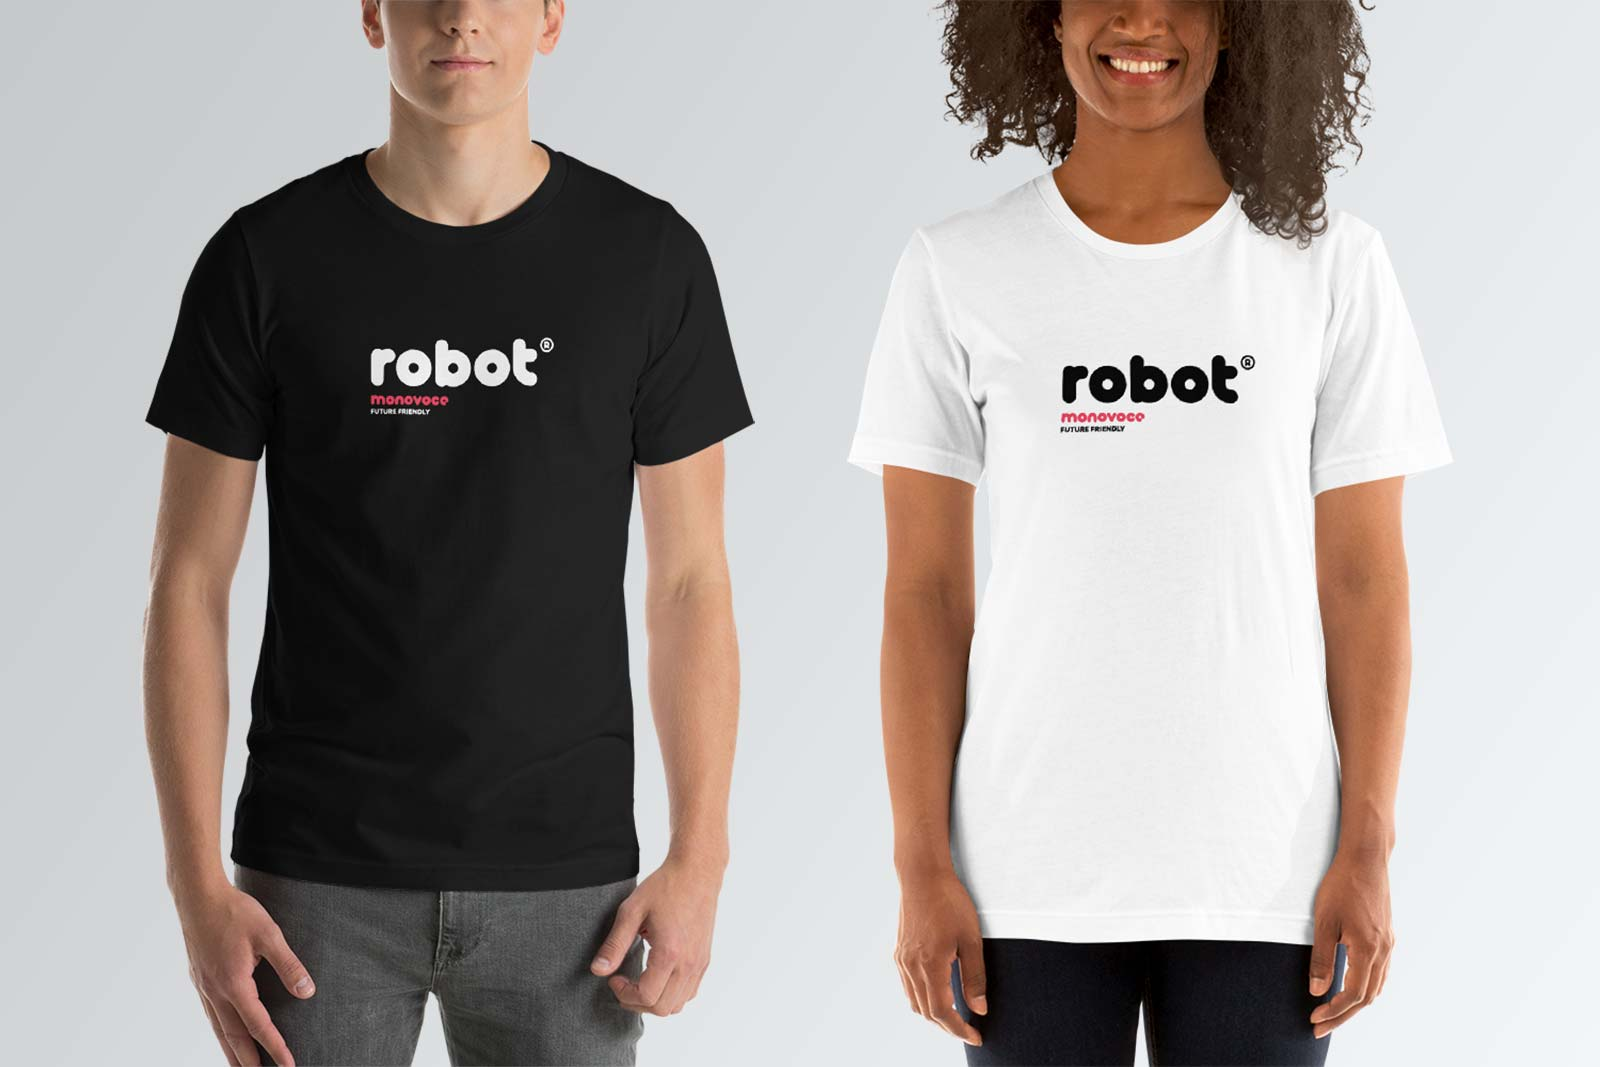 Robot t-shirt for men in black and white